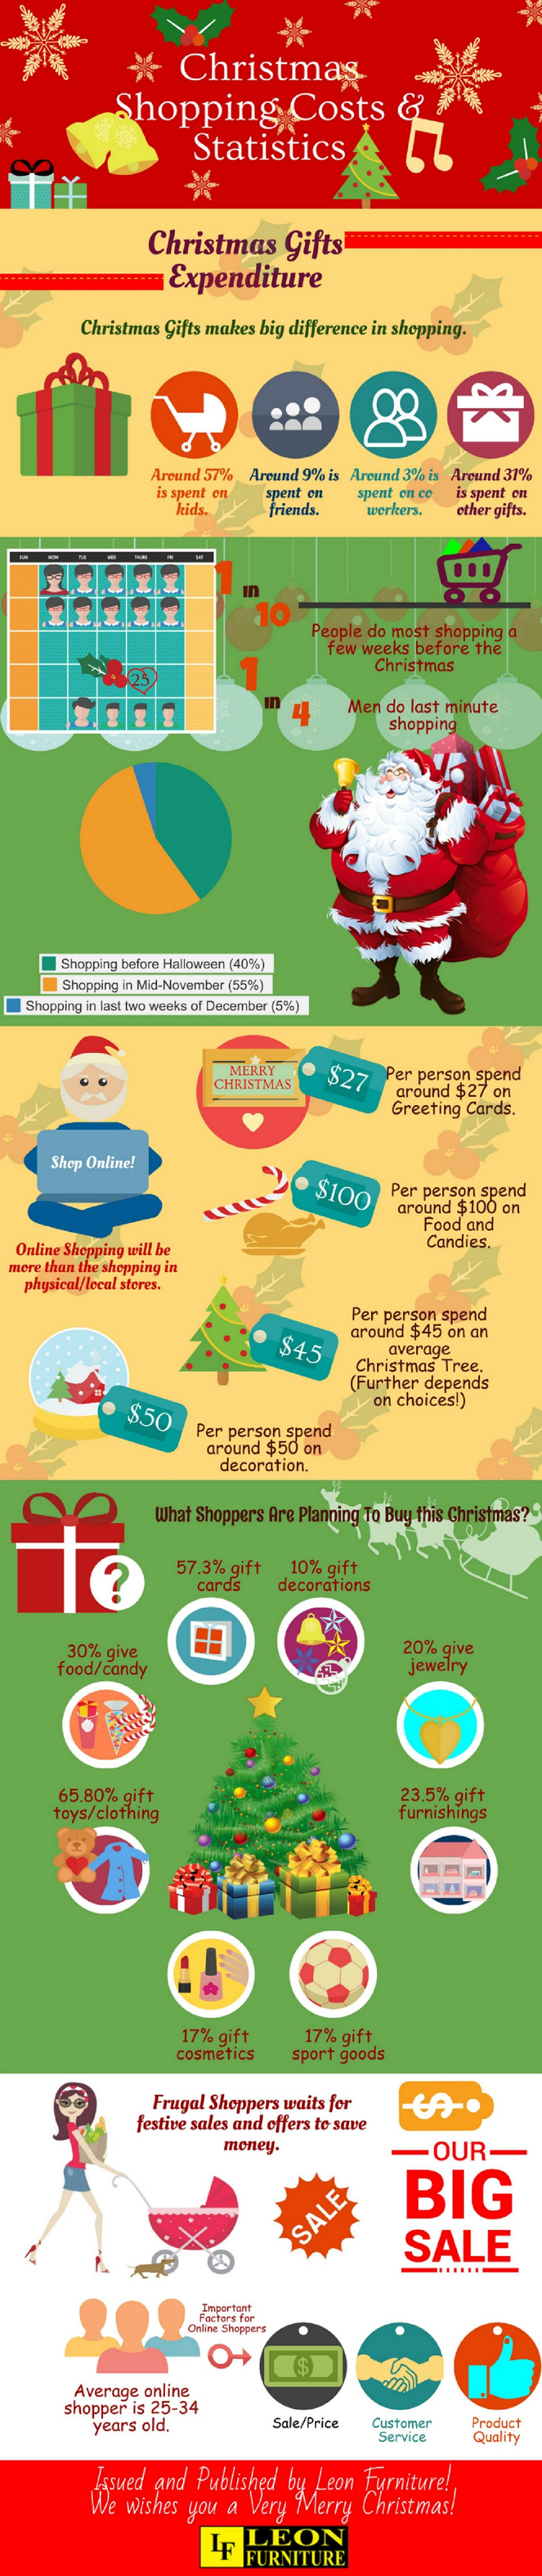 Christmas Shopping Costs & Statistics